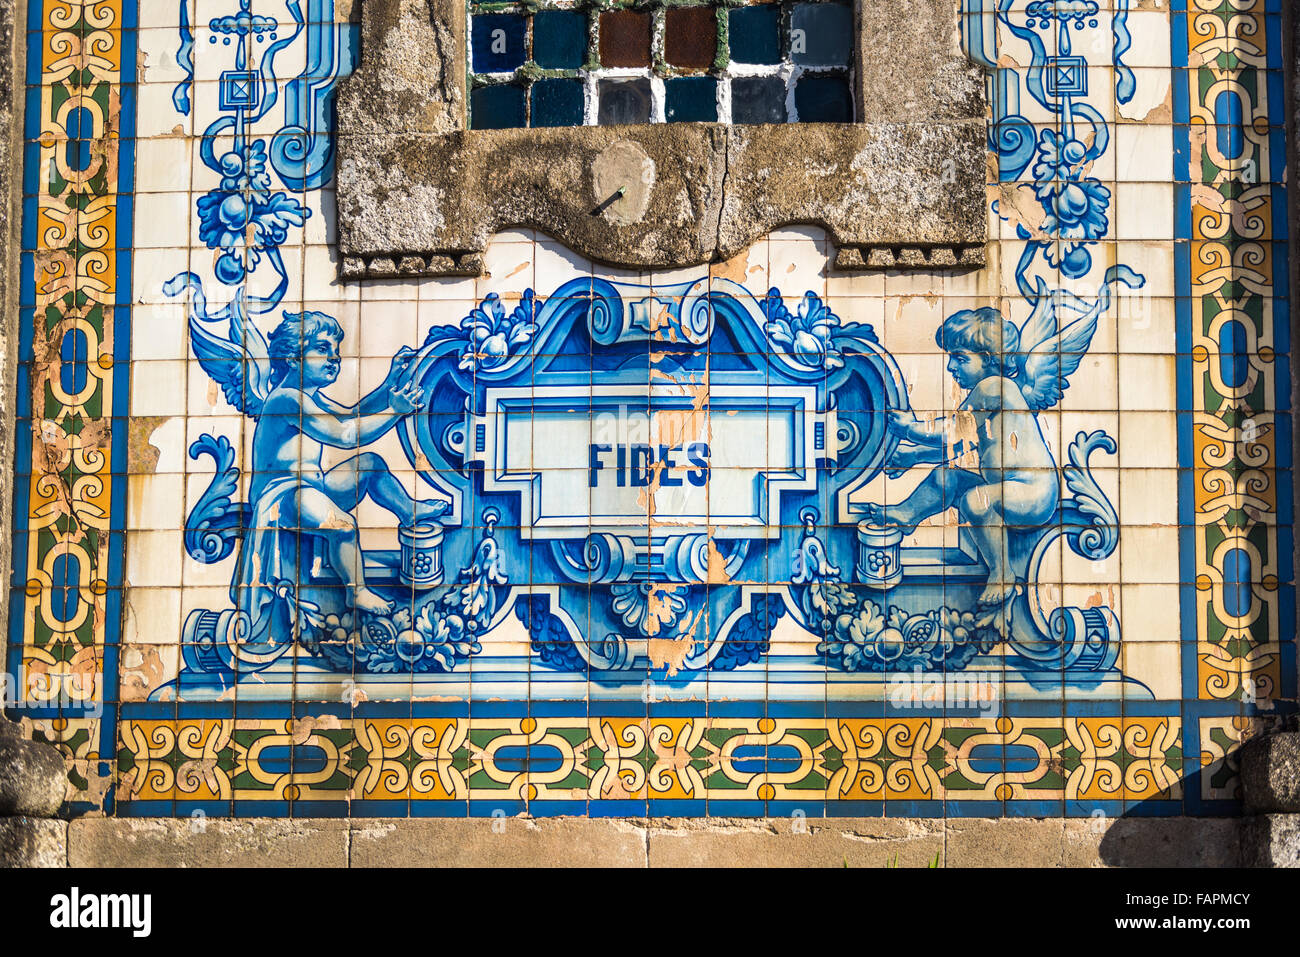 Decoration with blue and white azulejos, tiles, on the facade of Santo Ildefonso Church, Porto - Stock Image